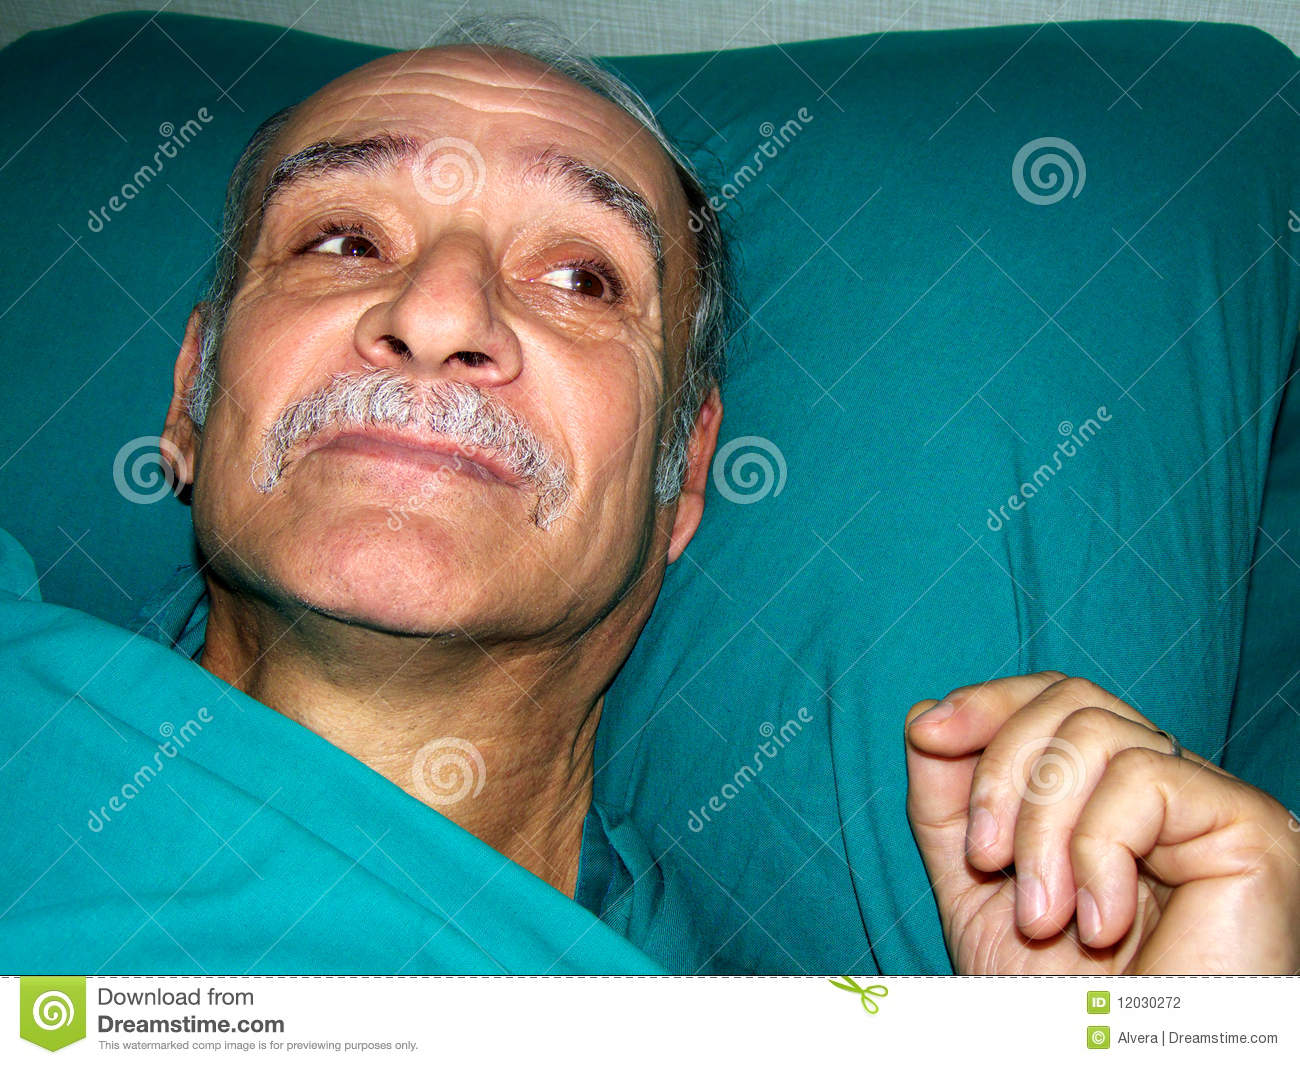 Images Of Sick Old Me In Hospital Bed : Sick old man in hospital bed. Close-up.